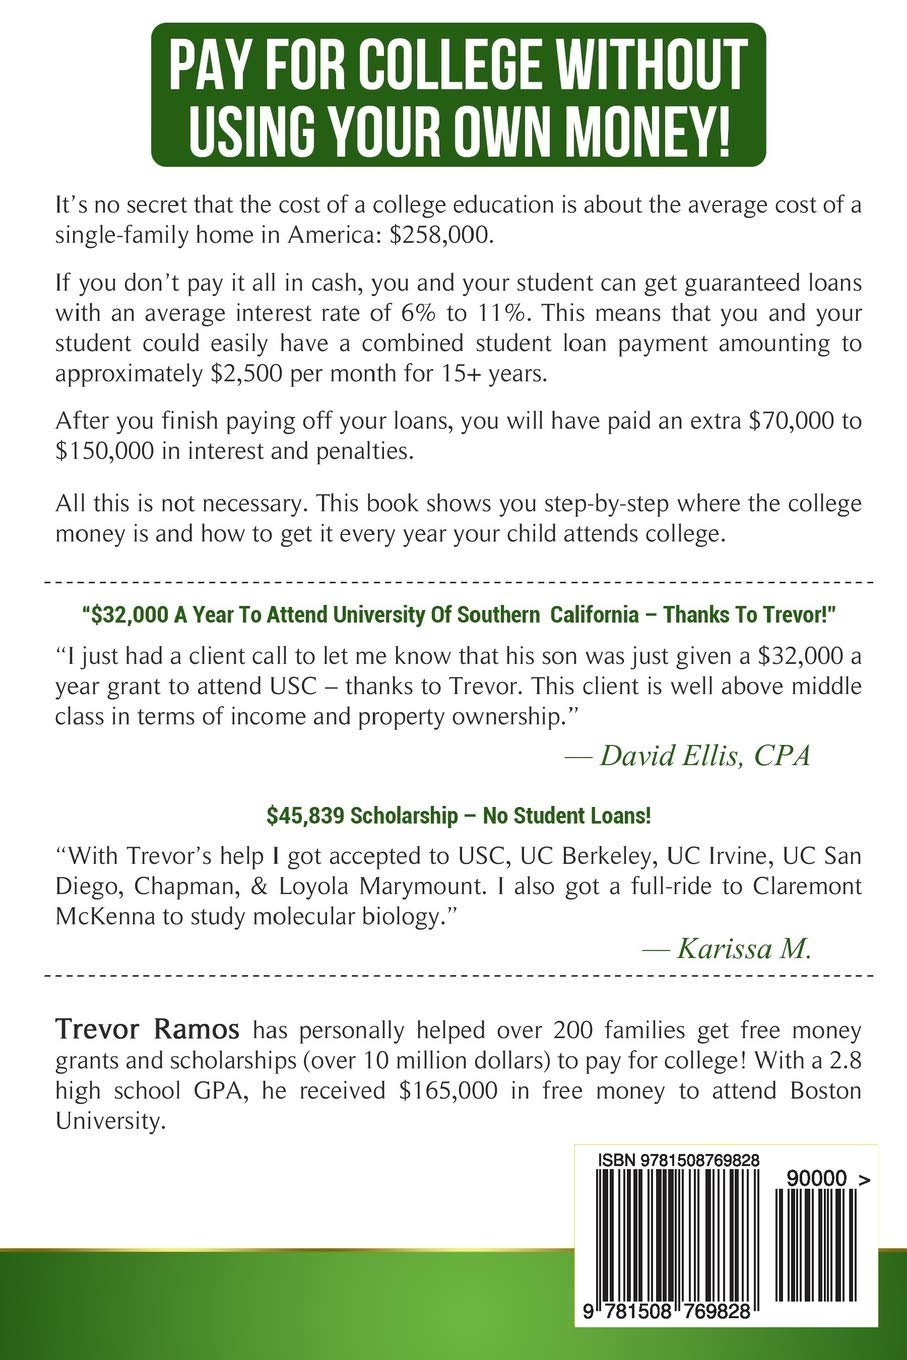 How To Get Free Money For College!: The Ultimate Guide To Sending Your Kids  To The Best, Most Expensive Colleges In America For Pennies On The Dollar!: